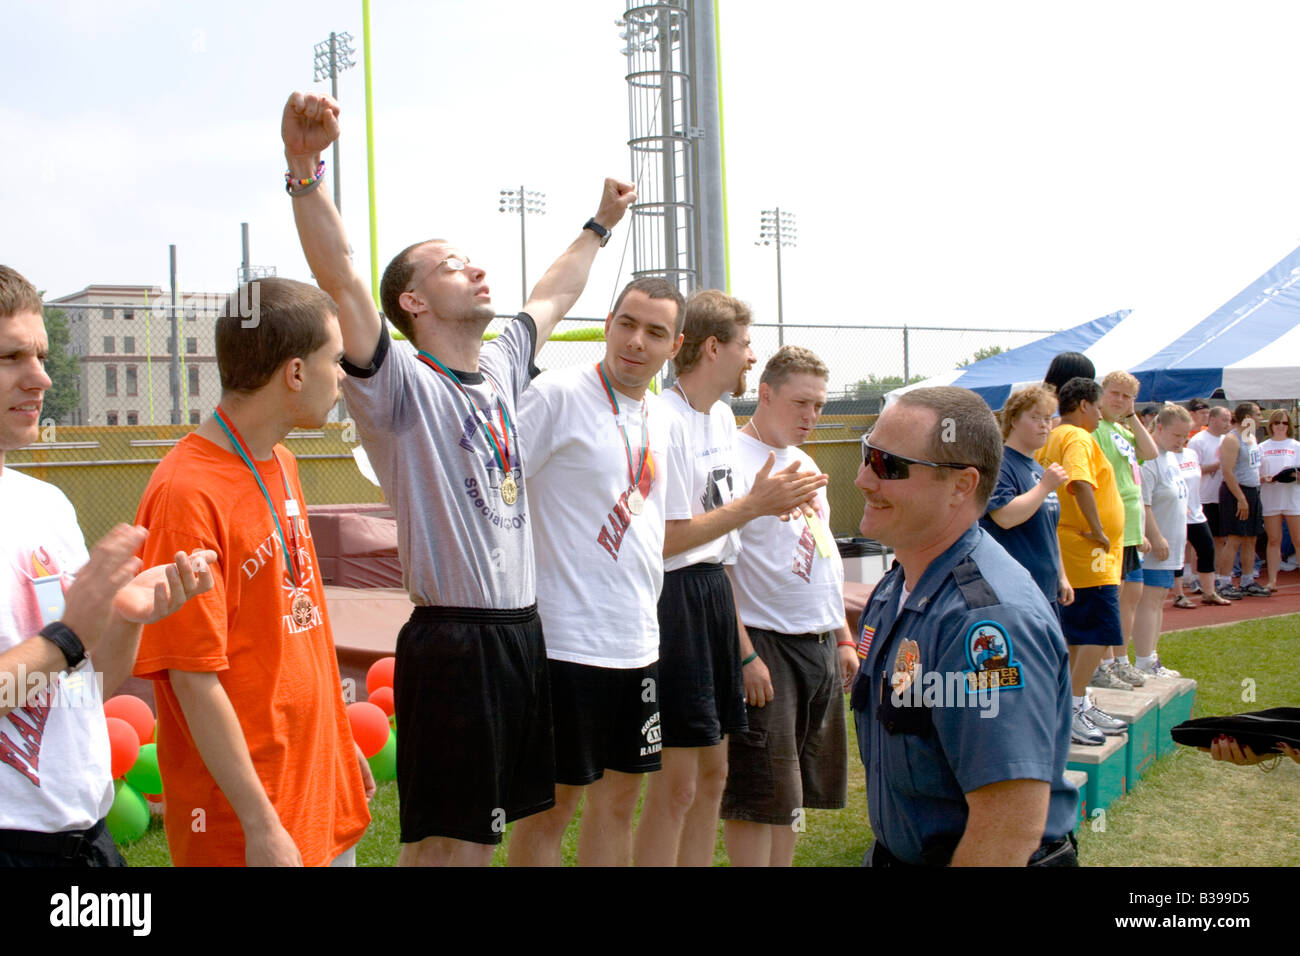 Exuberant athlete wearing 1st place medal. Special Olympics U of M Bierman Athletic Complex. Minneapolis Minnesota - Stock Image